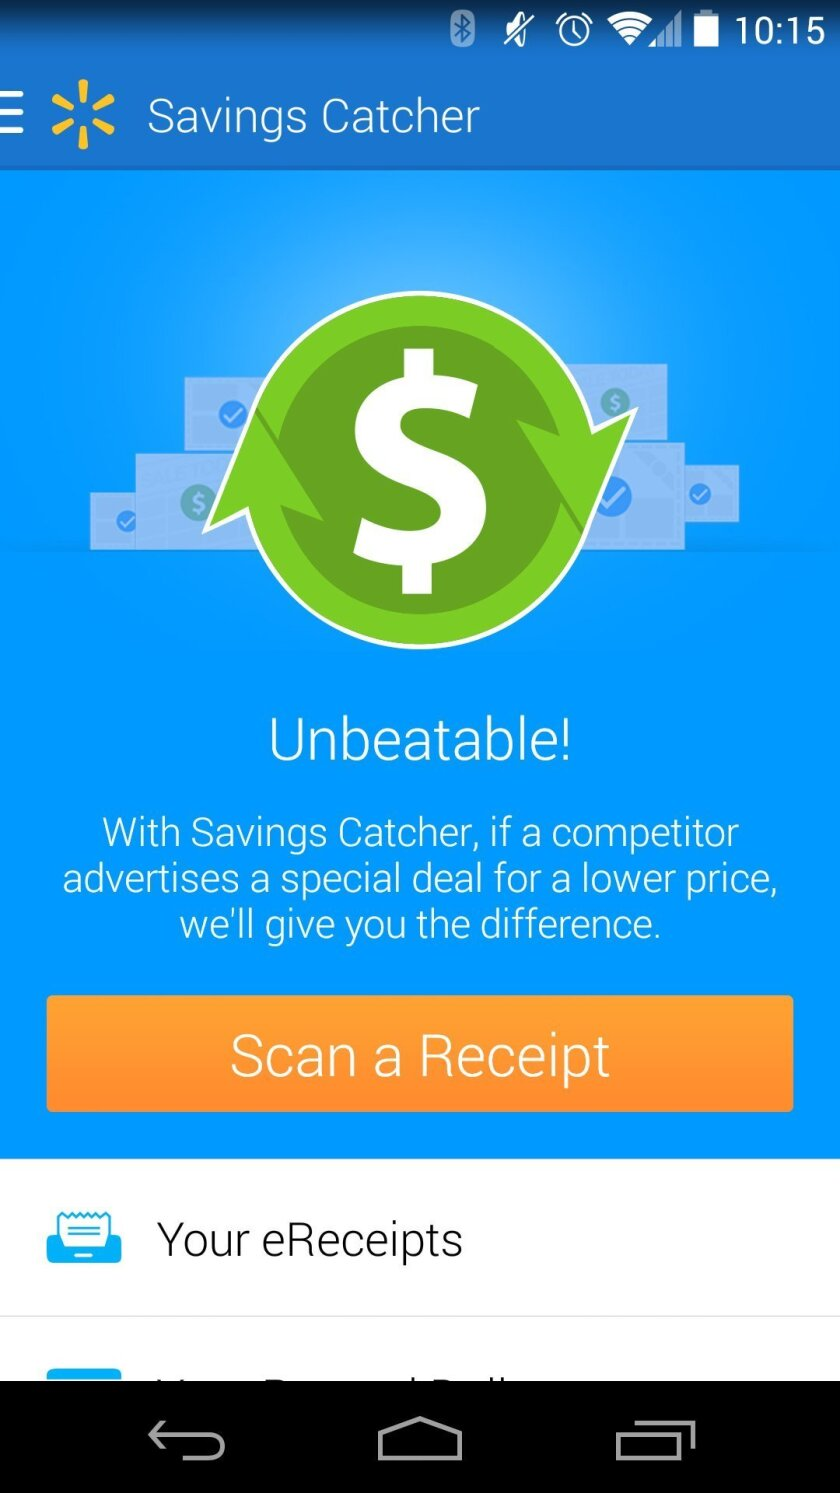 This screen shot shows Wal-Mart's Savings Catcher App. Savings Catcher lets you scan the receipt with your smartphone or type in the receipt number into the app. Then, Wal-Mart compares what you bought with its competitors' sale prices. When it finds a lower price, it lets you put the difference between that price and what you paid on an electronic gift card. (AP Photo)